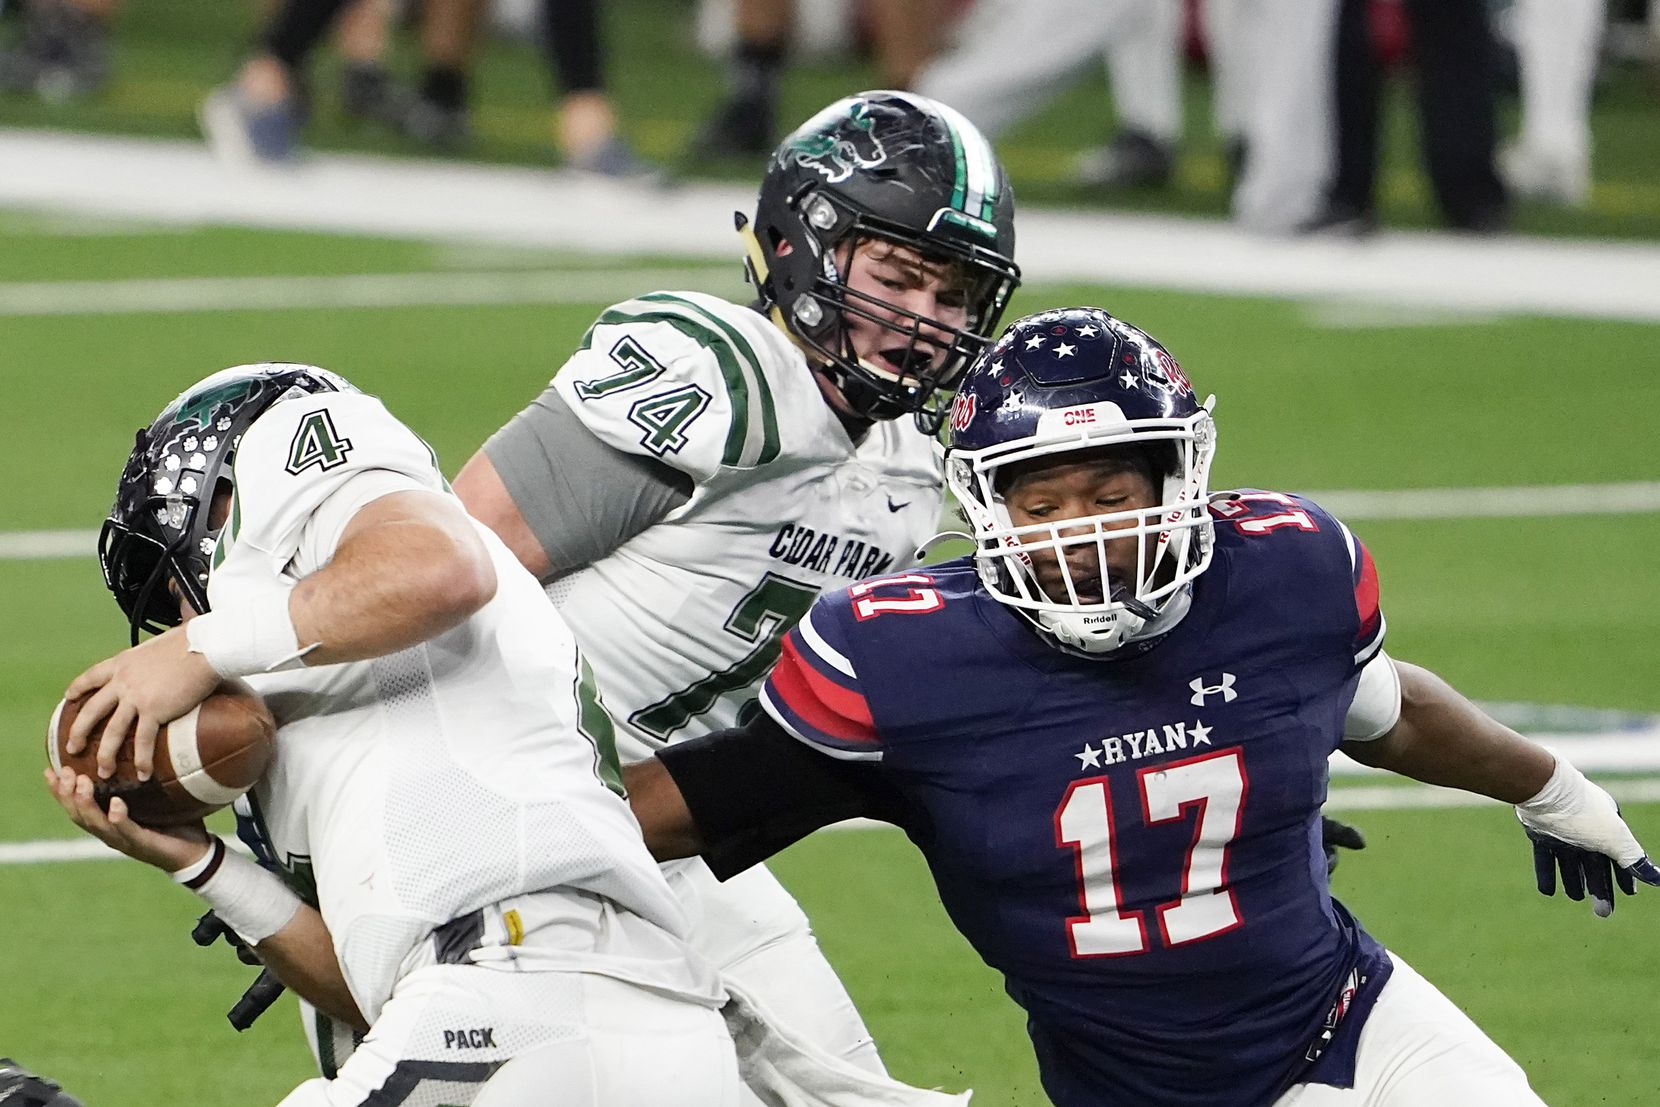 Cedar Park quarterback Ryder Hernandez (4) tries to spin away from Denton Ryan defensive lineman Michael Gee (17) during the second half of the Class 5A Division I state football championship game at AT&T Stadium on Friday, Jan. 15, 2021, in Arlington, Texas. Ryan won the game 59-14. (Smiley N. Pool/The Dallas Morning News)